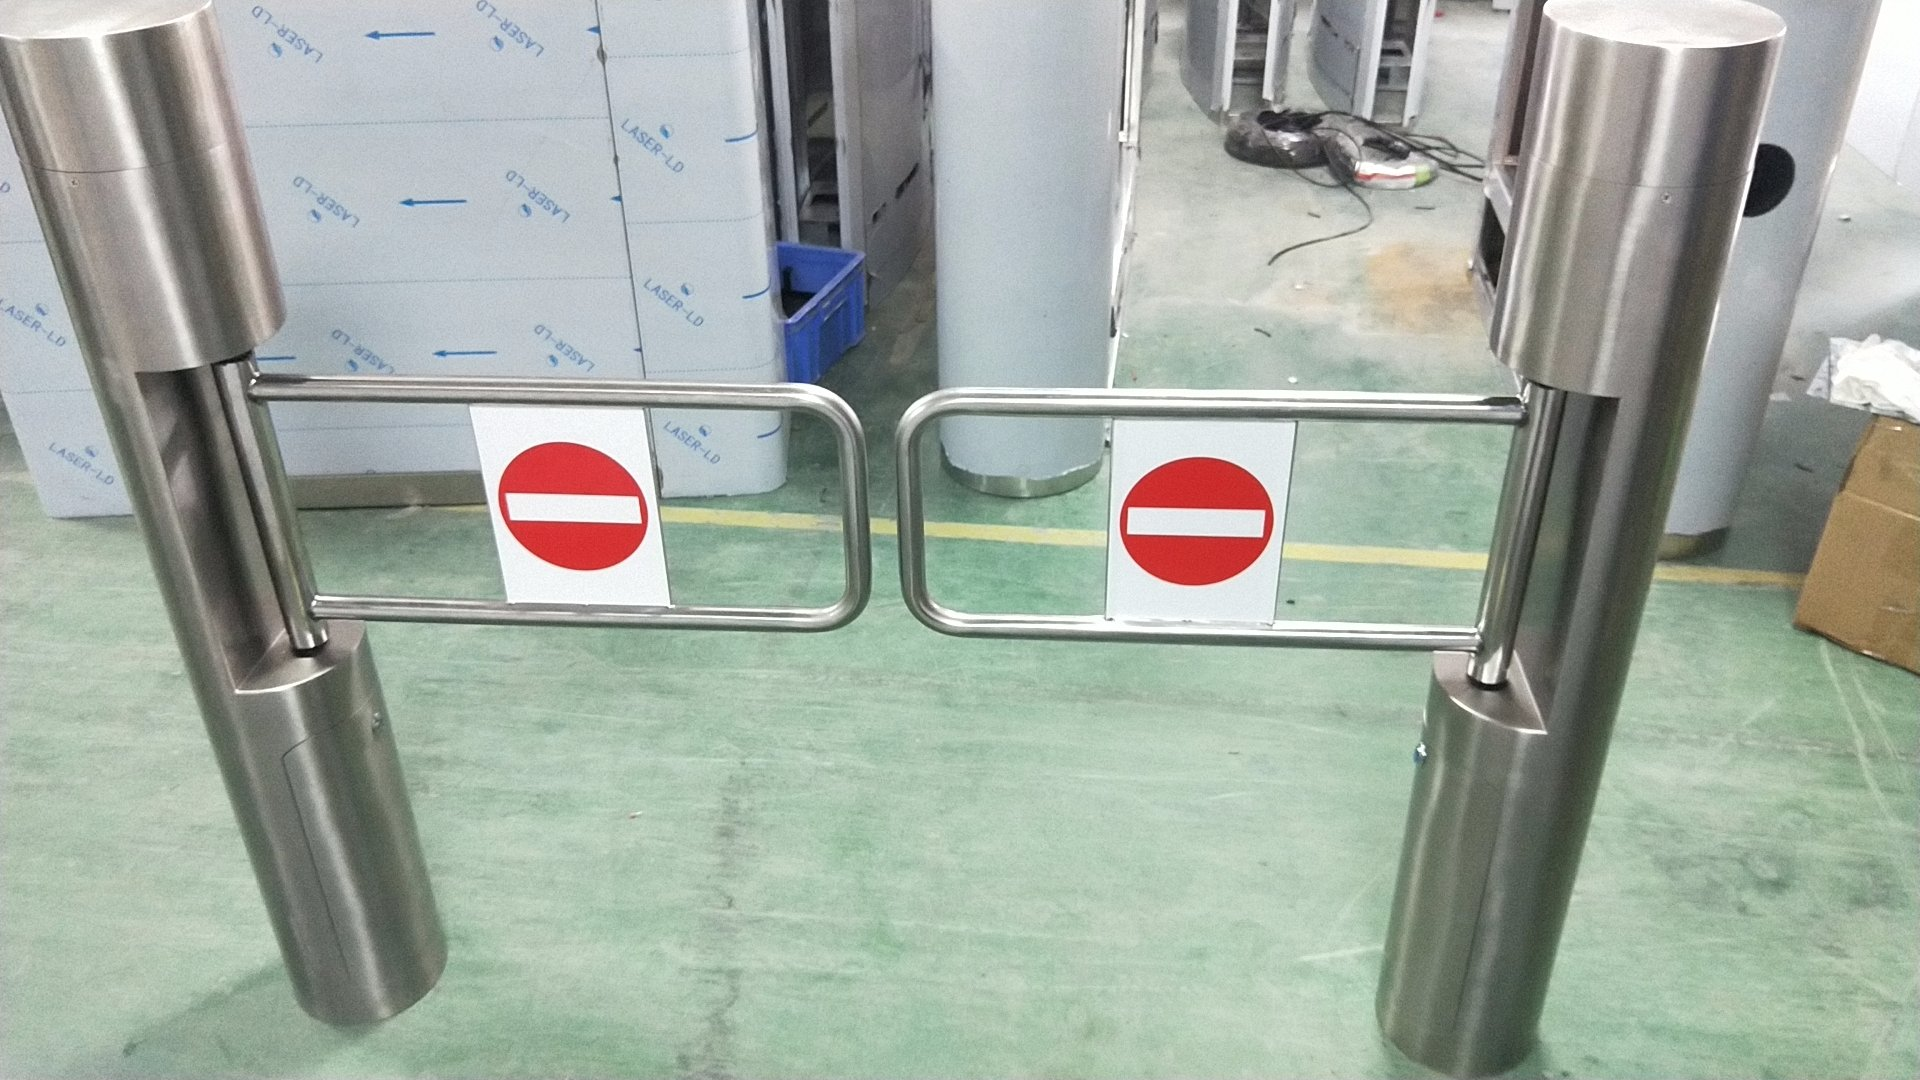 Swing turnstile gate